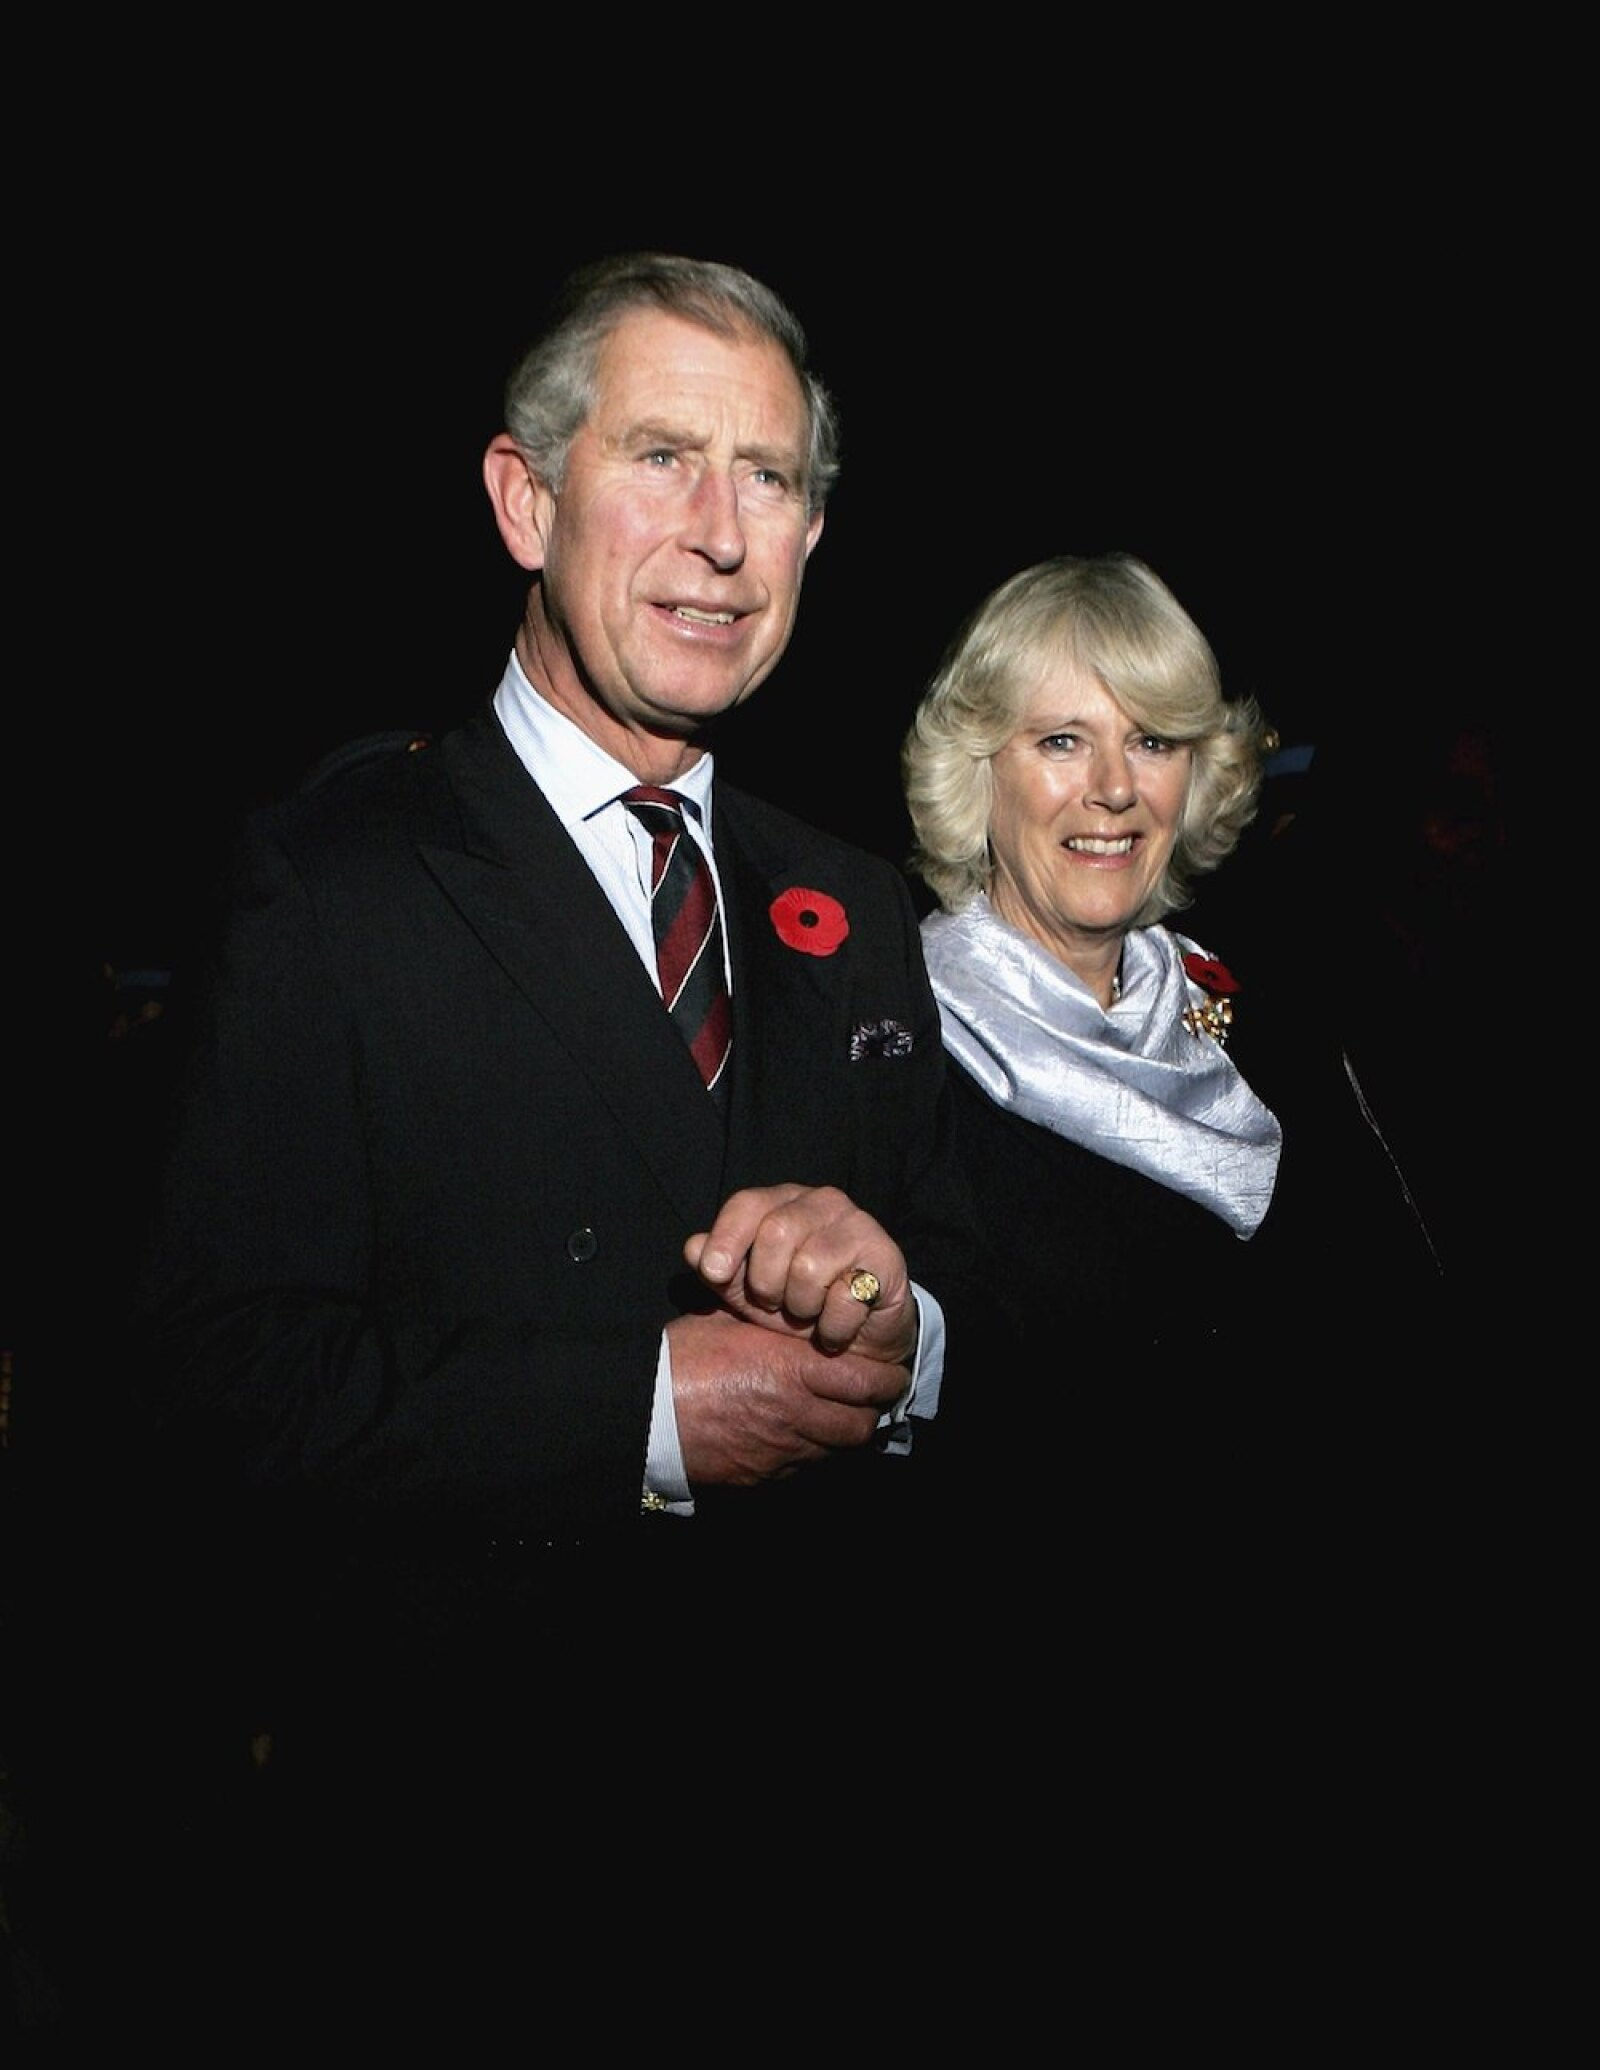 Prince Of Wales And Duchess of Cornwall Visit Pakistan - Day 1